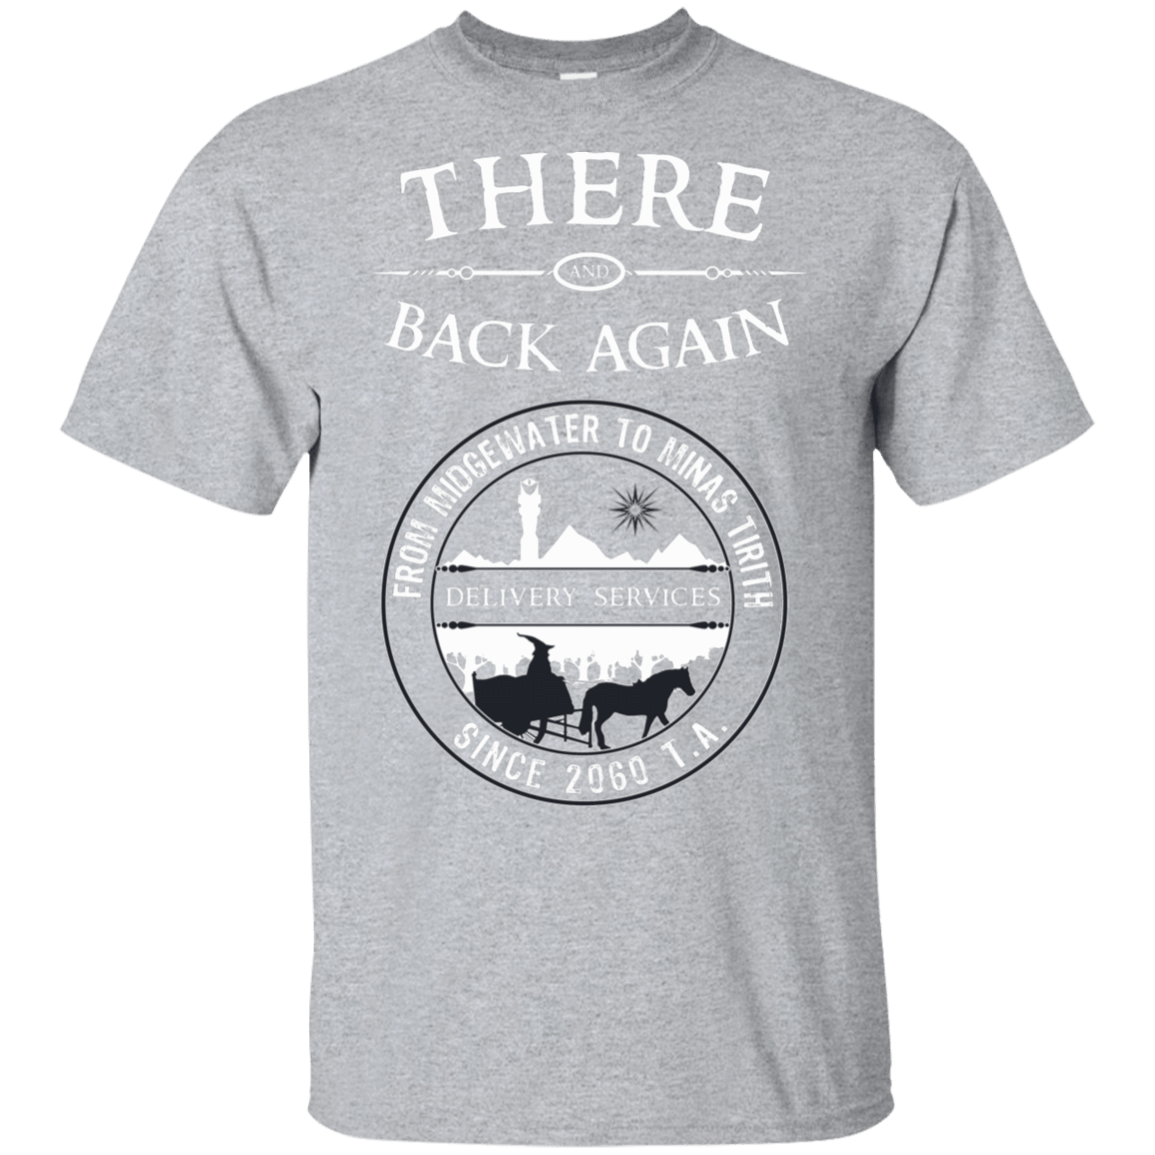 There and Back Again T-Shirt